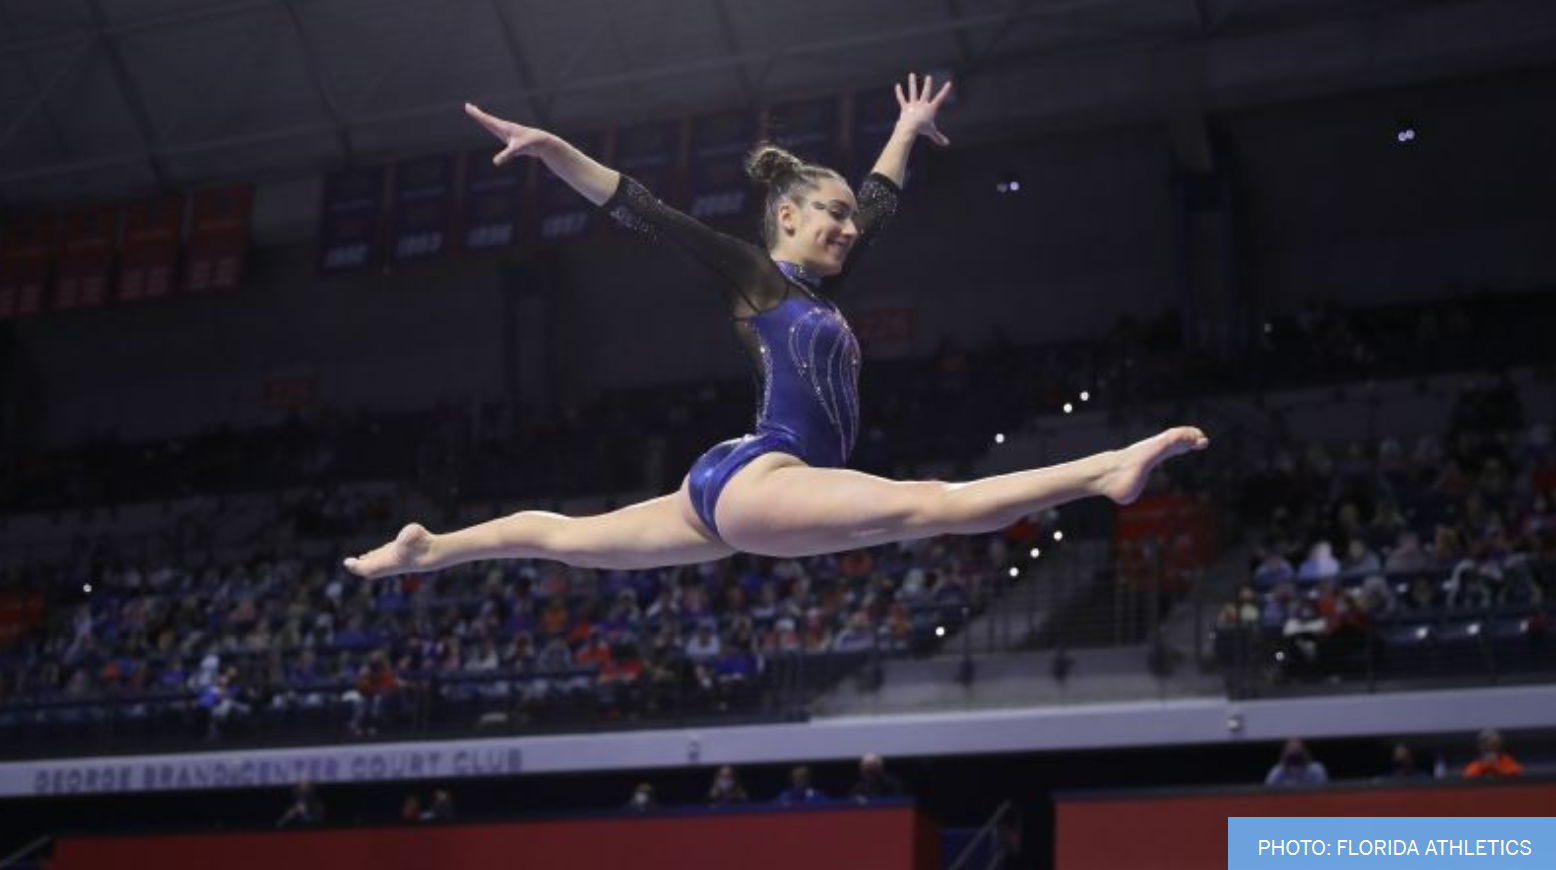 Clapper Named Gymnastics Scholar-Athlete of the Year